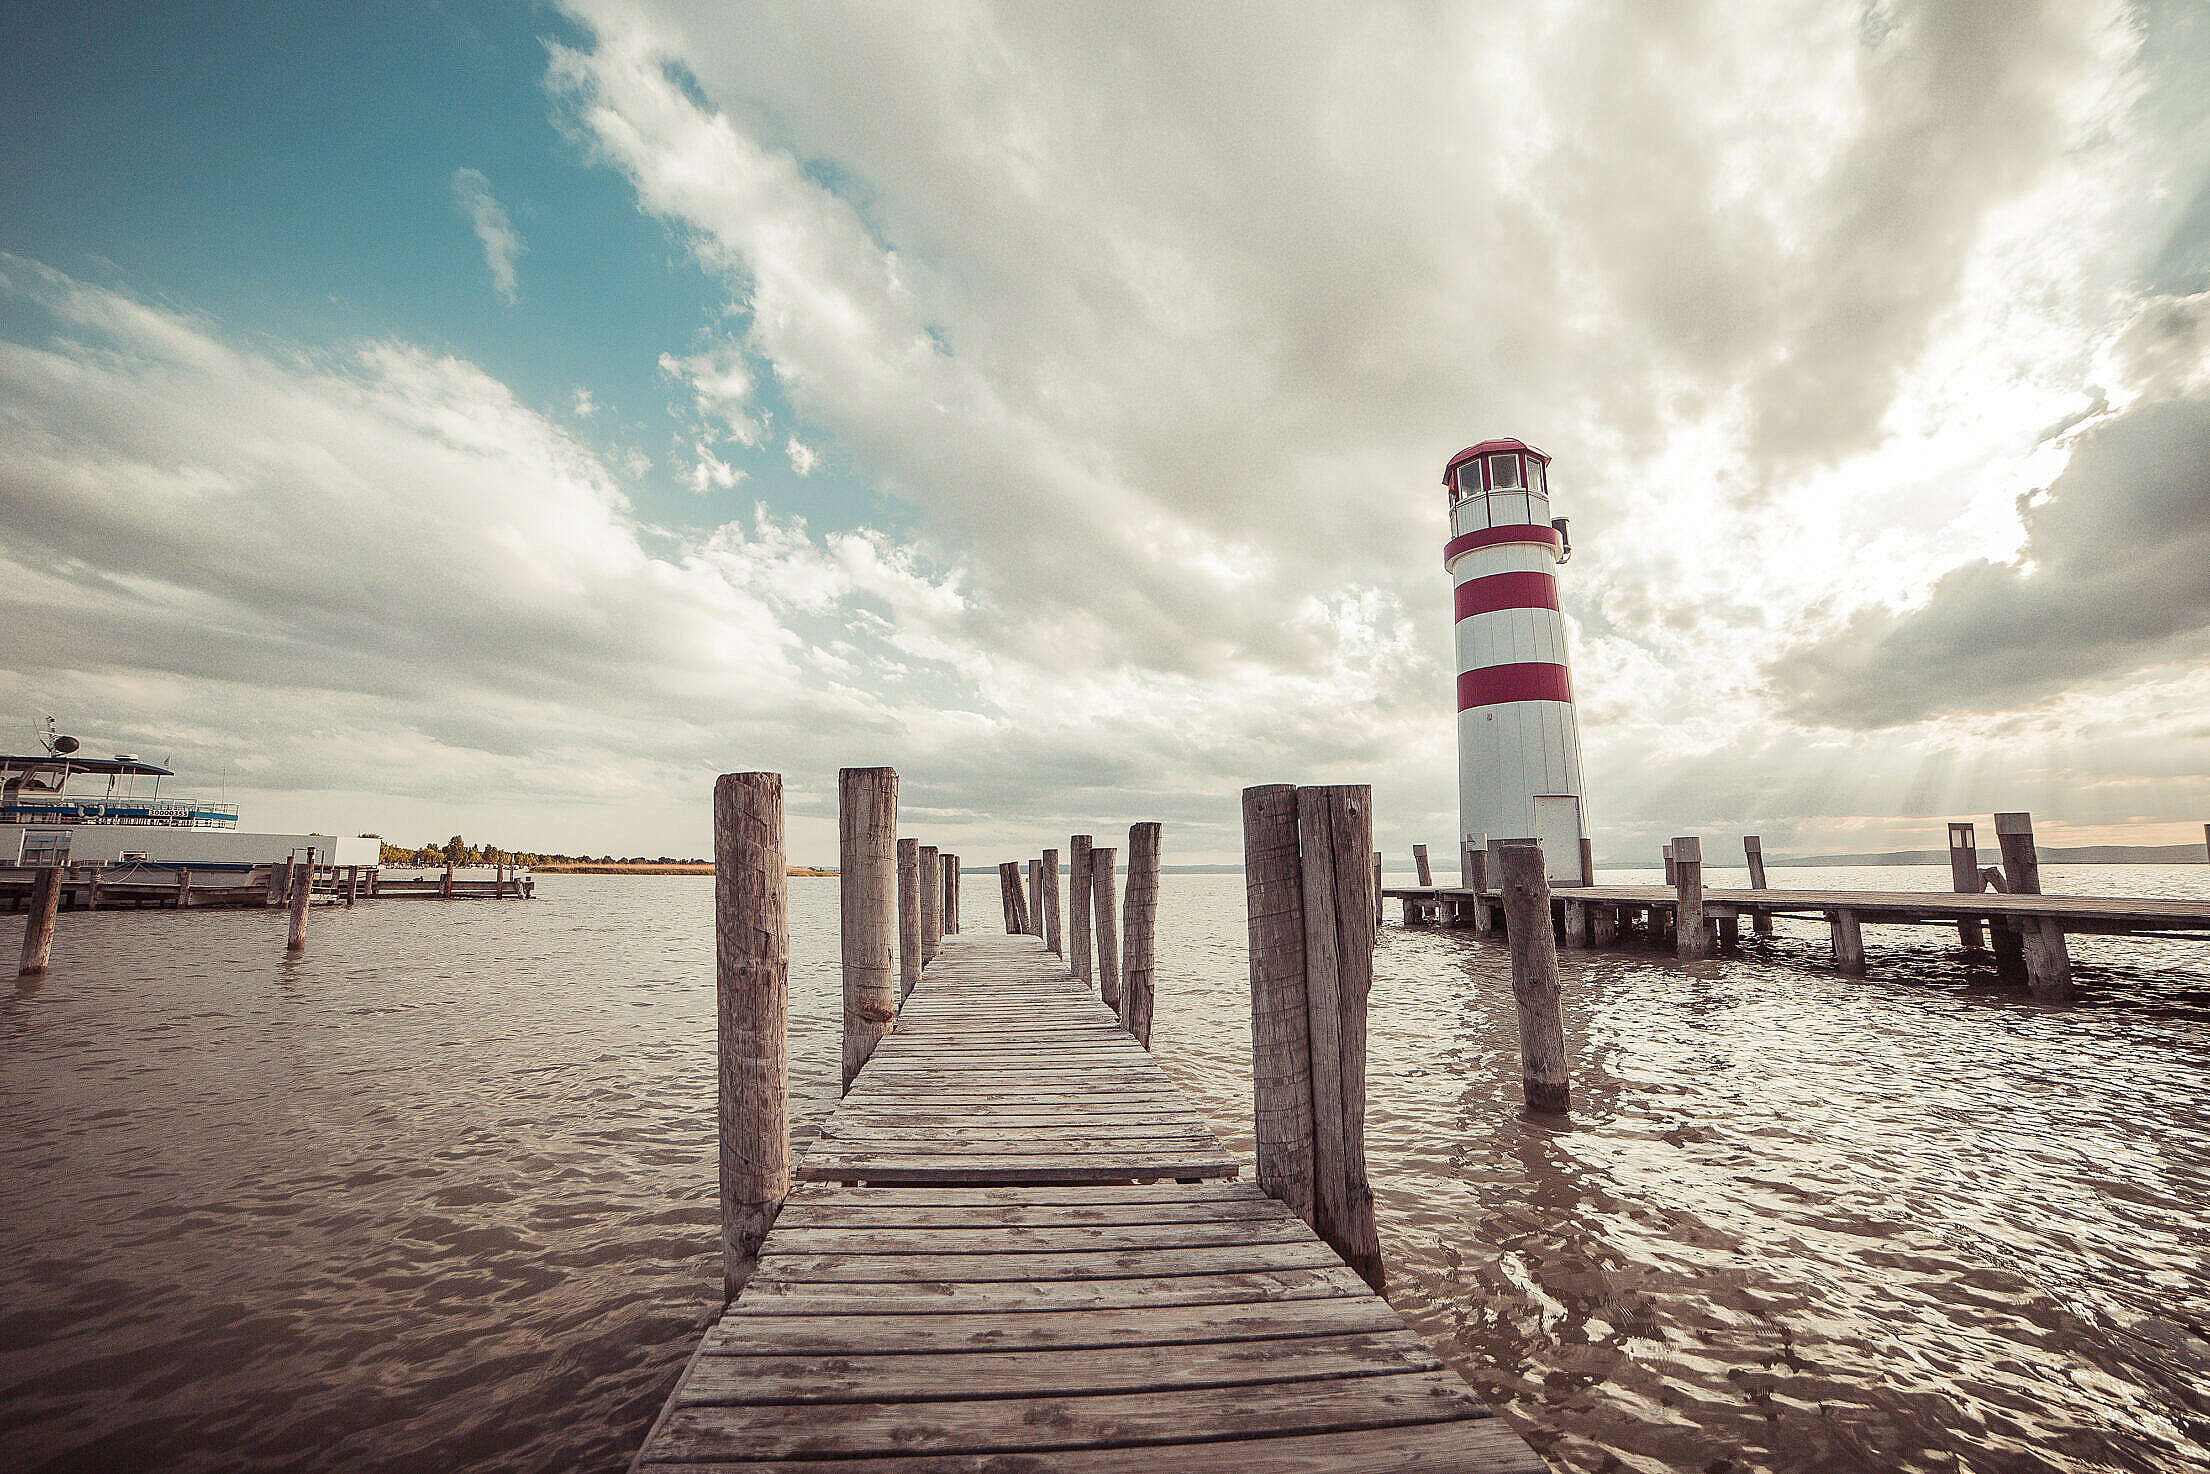 Pier with a Lighthouse: Vintage Edit Free Stock Photo